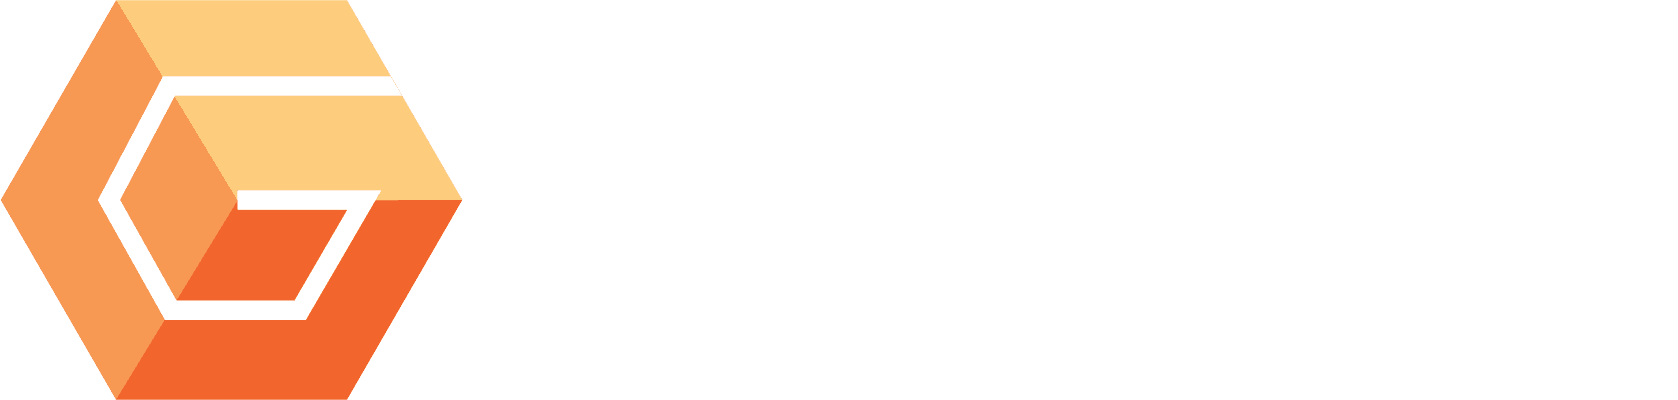 https://gruber.com/wp-content/uploads/sites/2/2020/02/Gruber-Communication-Products_White.png